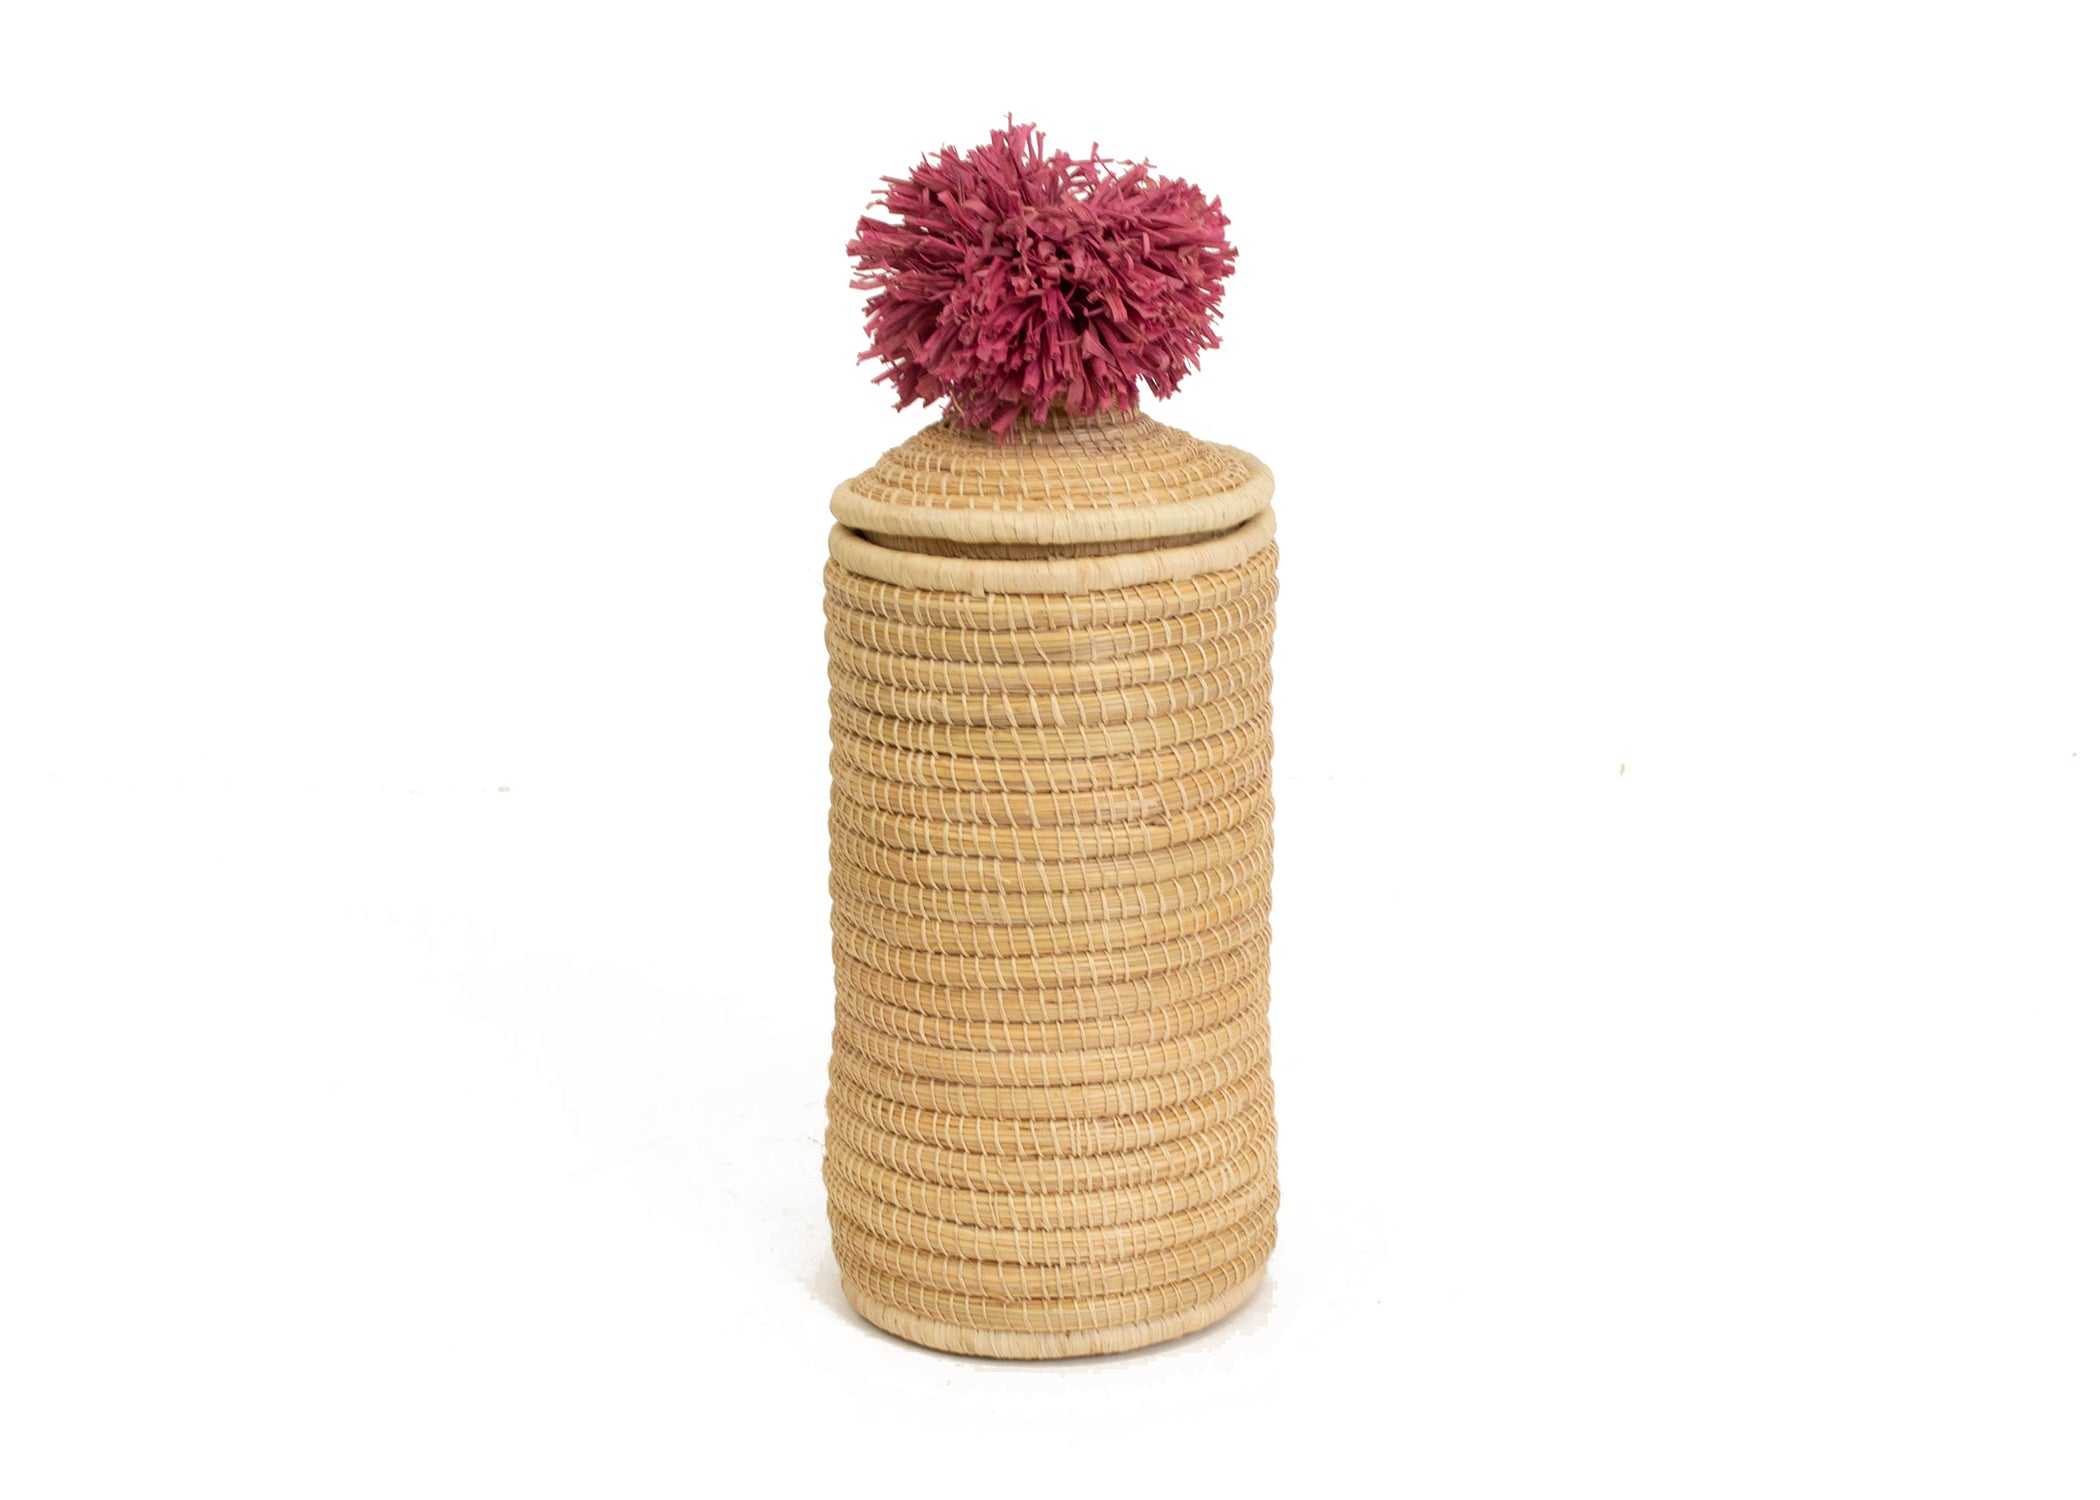 Rosette Mfale Pom Pom Box - KAZI - Artisan made high quality home decor and wall art